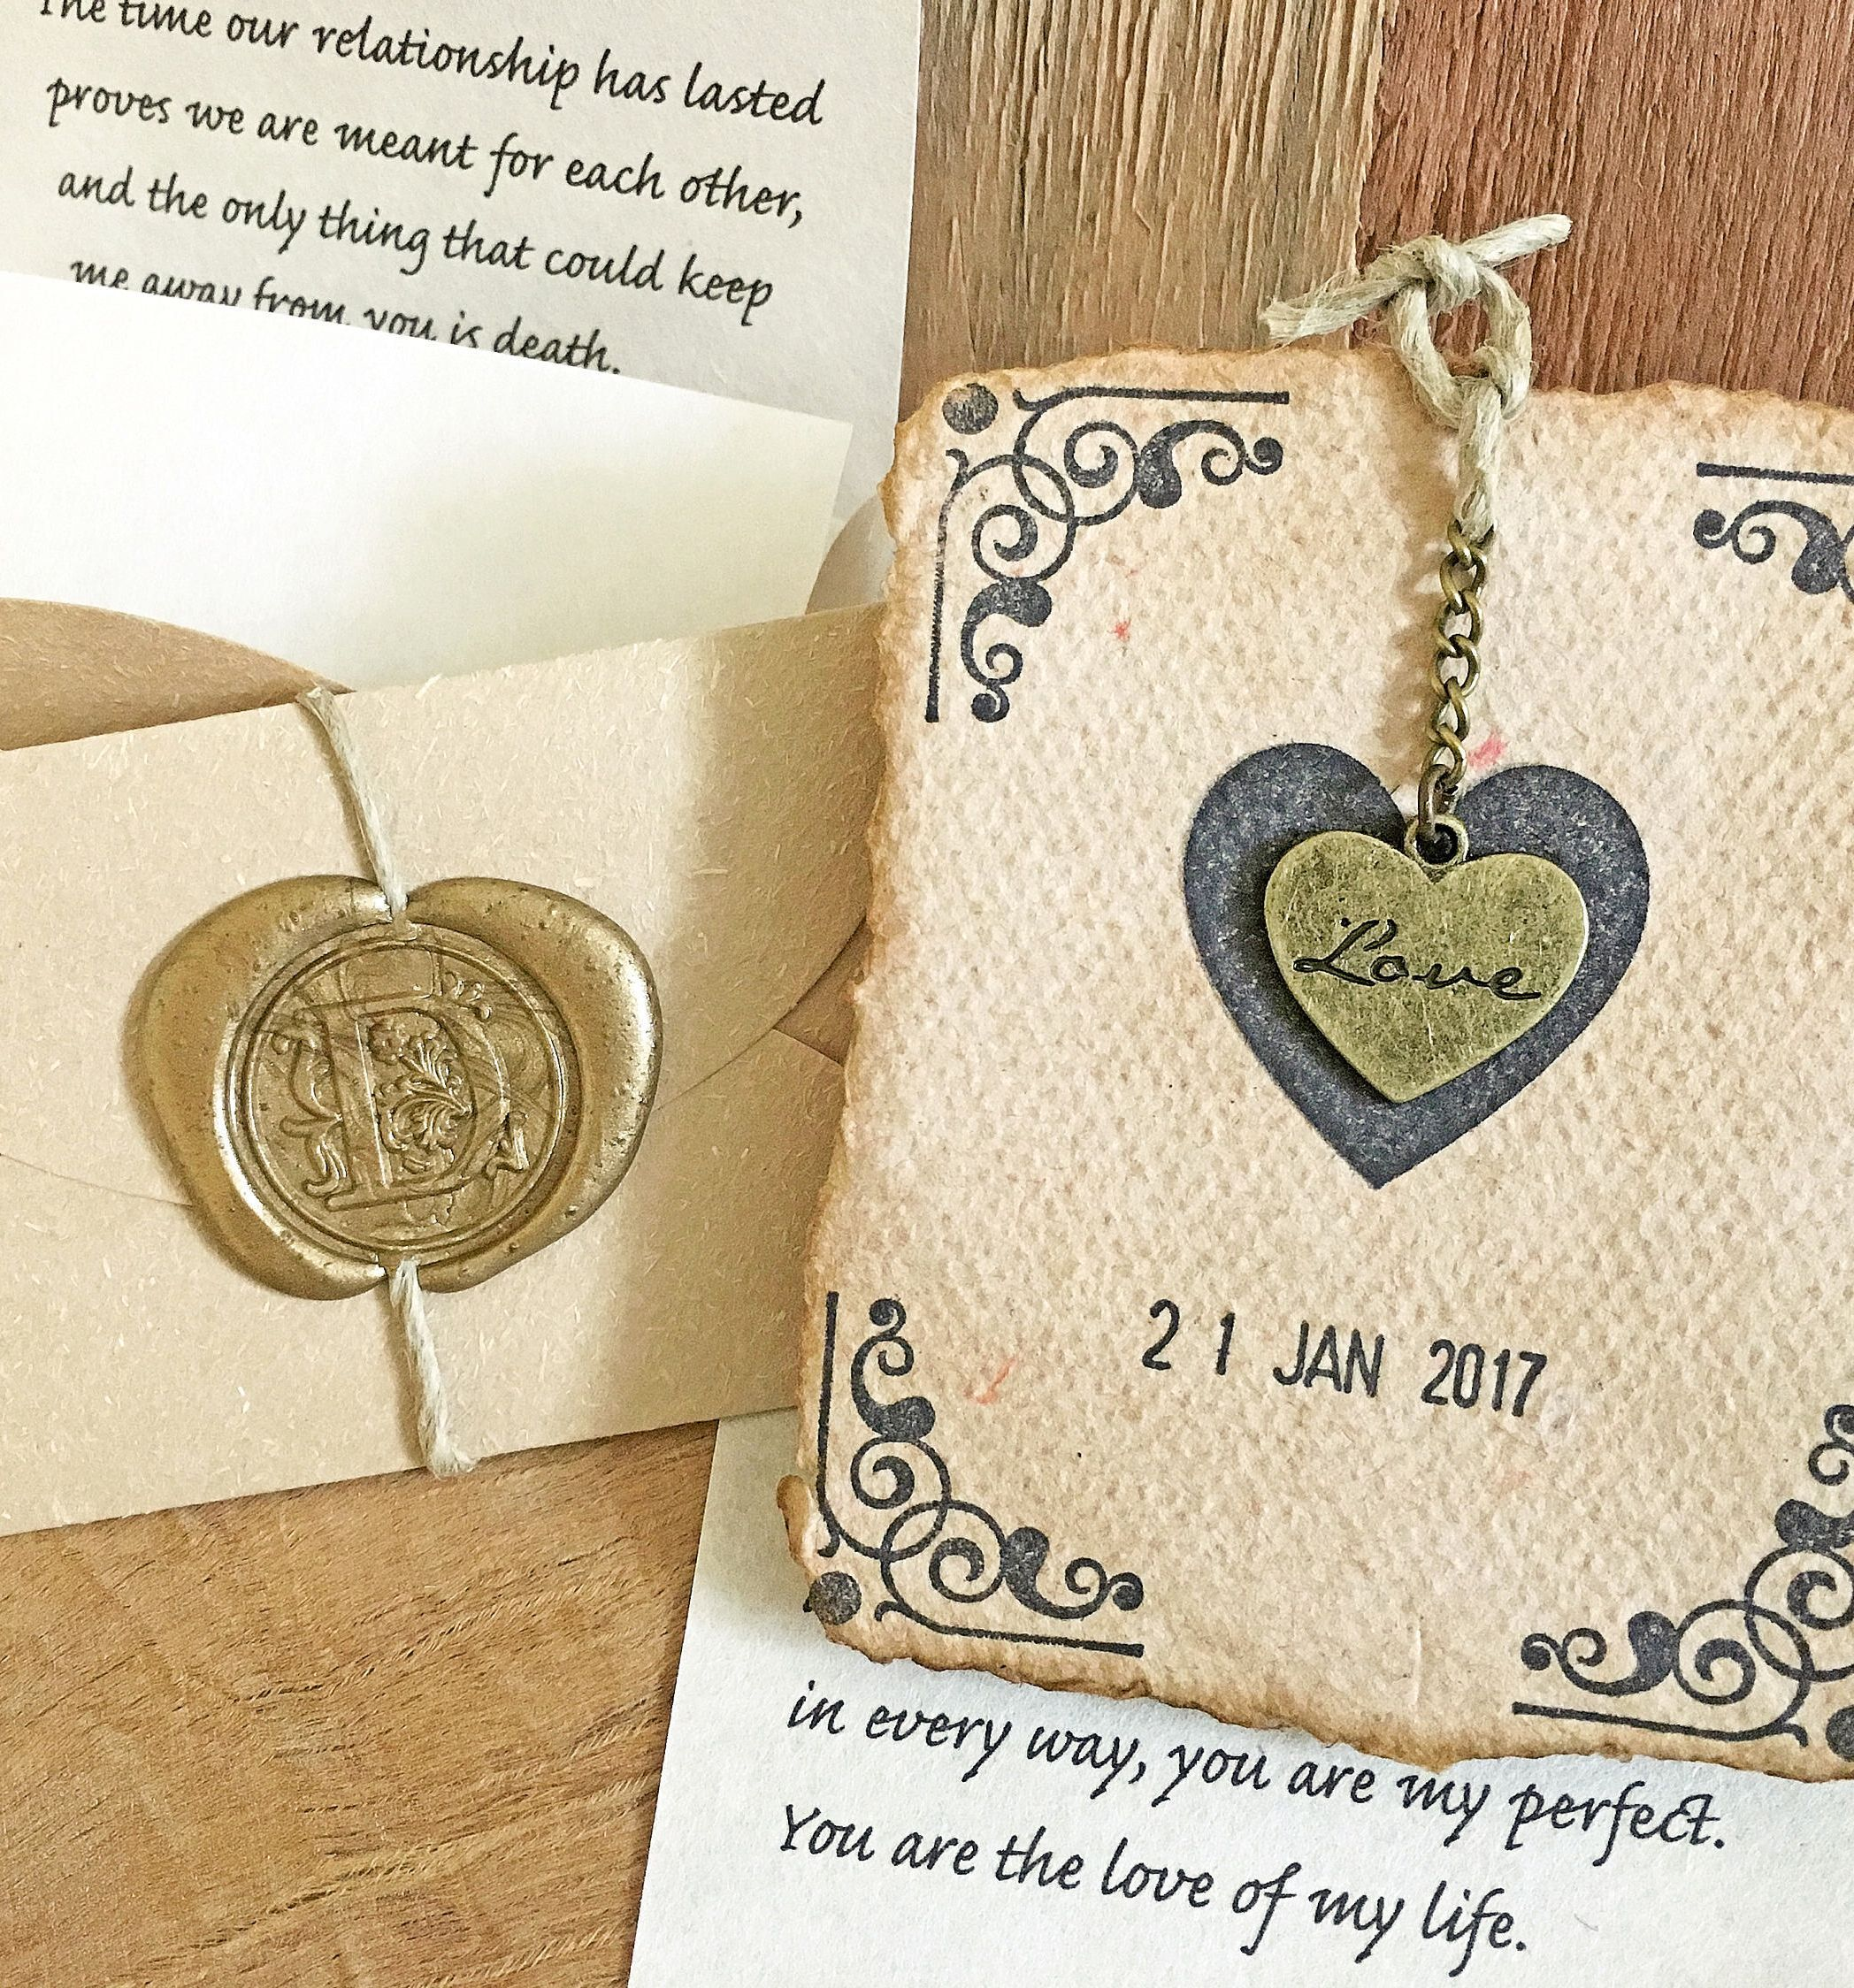 Romantic paper anniversary gift, Personalized love letter ...